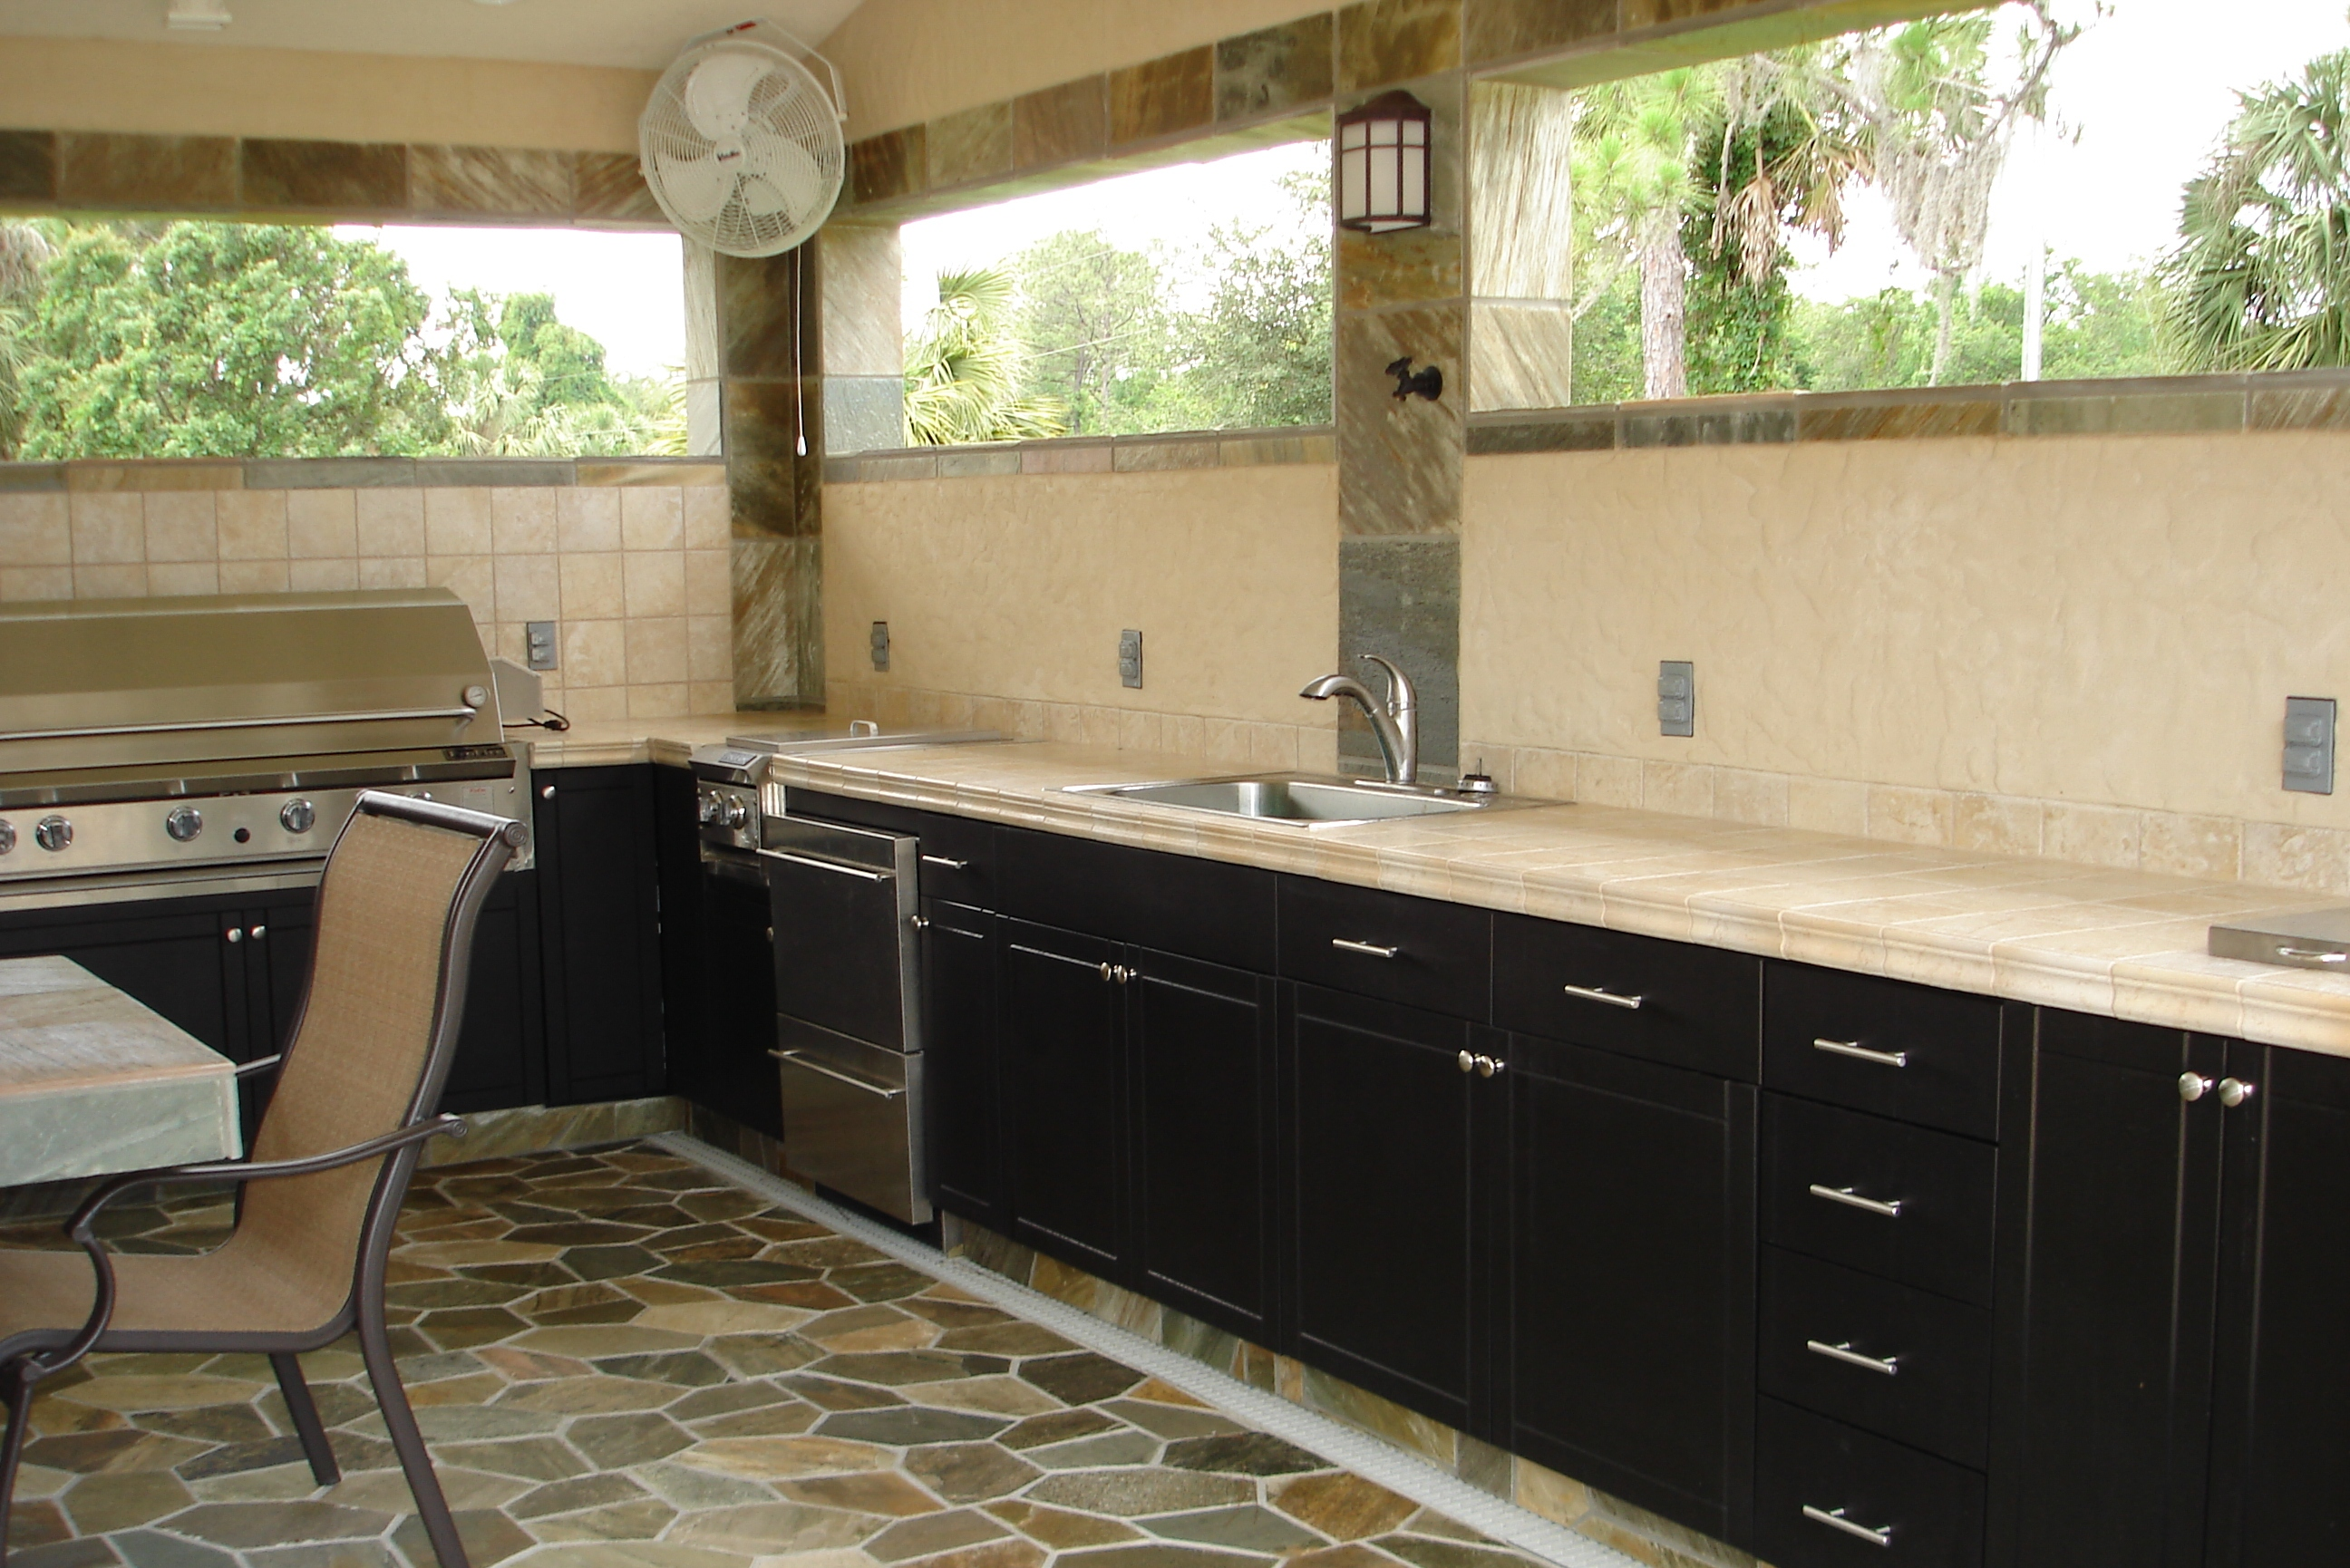 Outdoor Cabinets Direct image 12